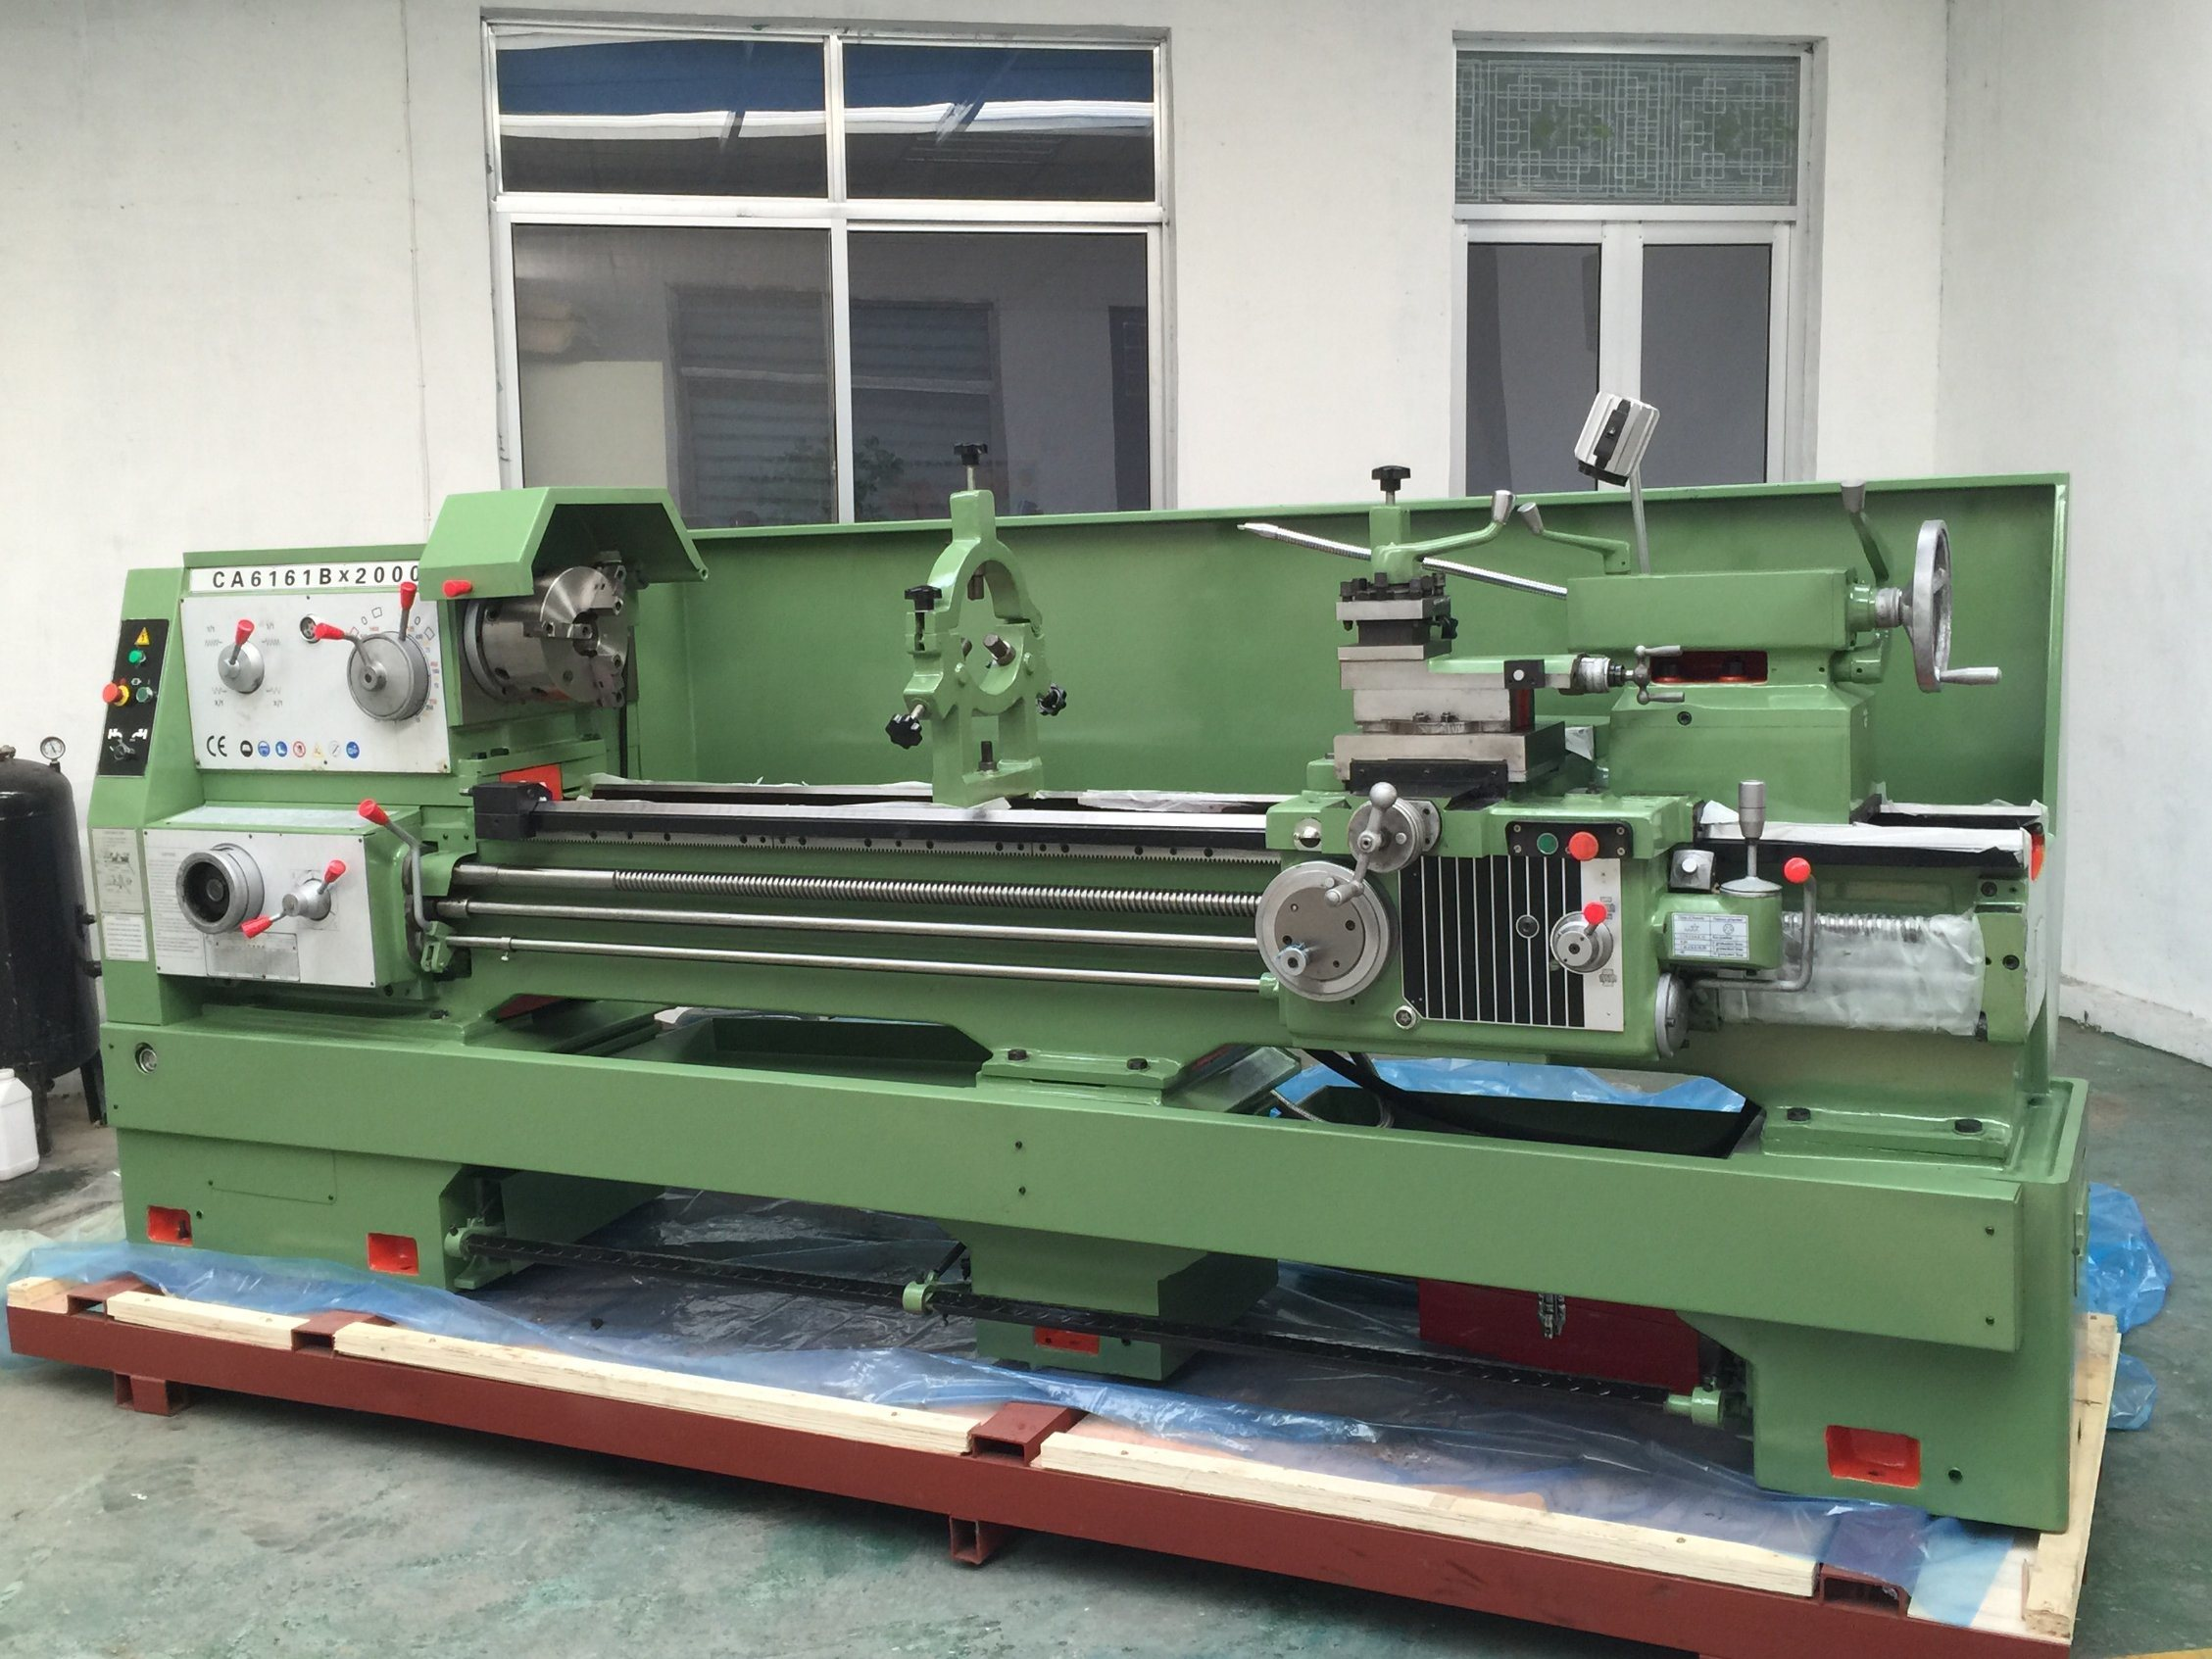 Ca6150 Universal Metal Common Lathe with Gap Bed Turning Lathe